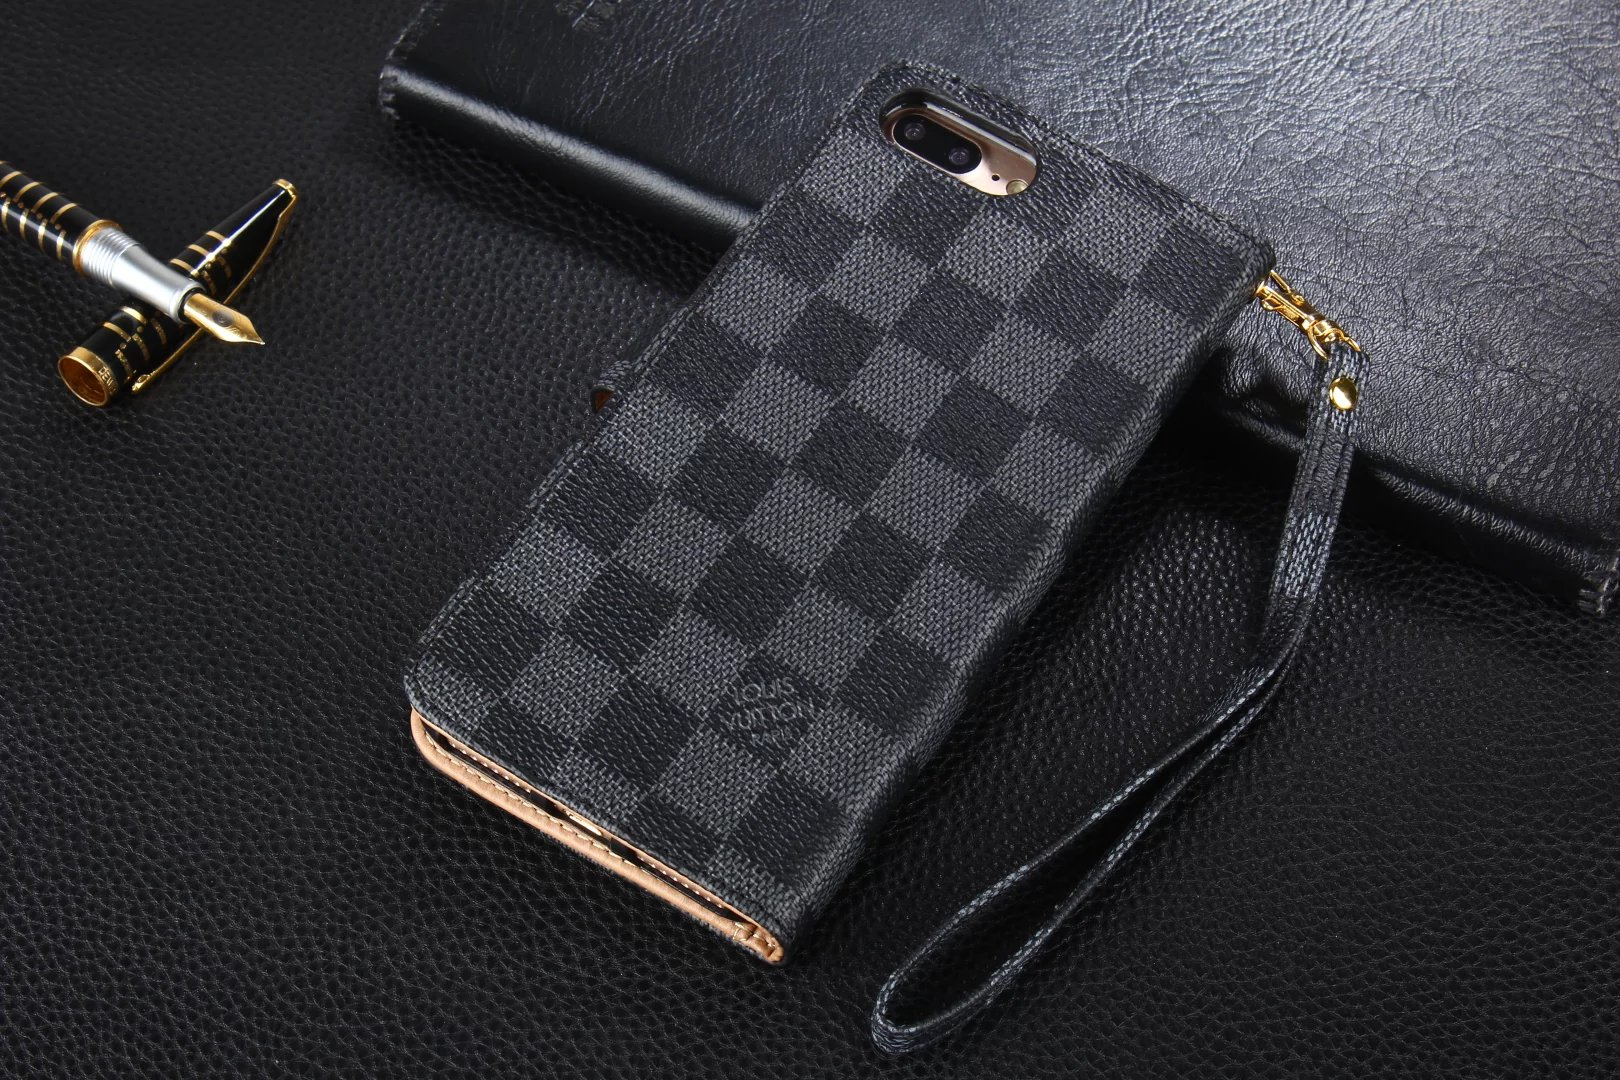 iphone 8 case best iphone cases for iphone 8 Louis Vuitton iphone 8 case mophie iphone case accessories phone cases cell phone cases cheap iphone cases for 6 iphone 8 plus covers unusual cell phone cases